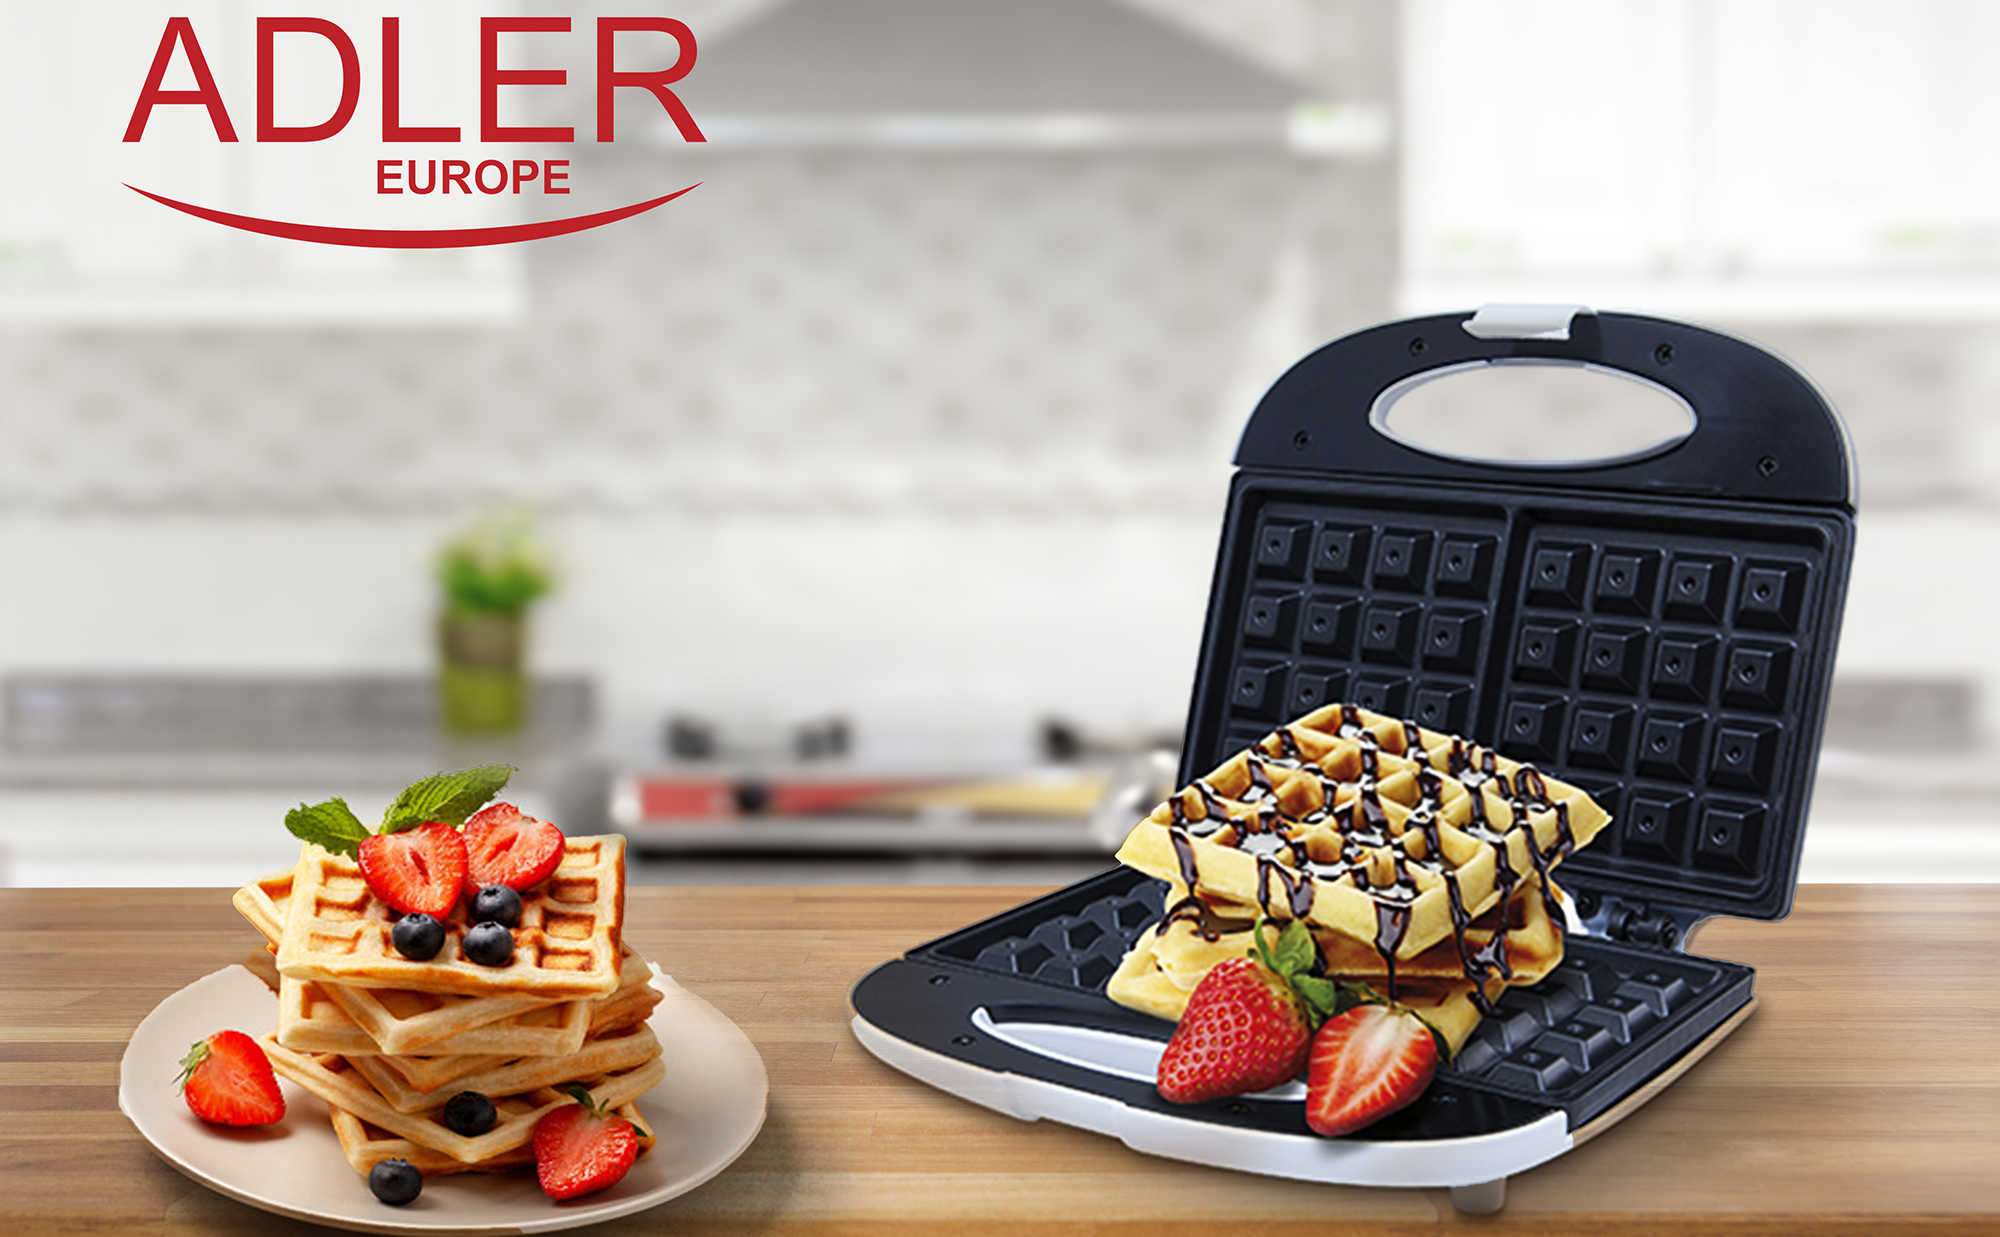 ADLER AD311 Electric waffle iron for 2 thick Belgian waffles, non-stick plates, automatic temperature, Cold Touch housing, 700 W, white